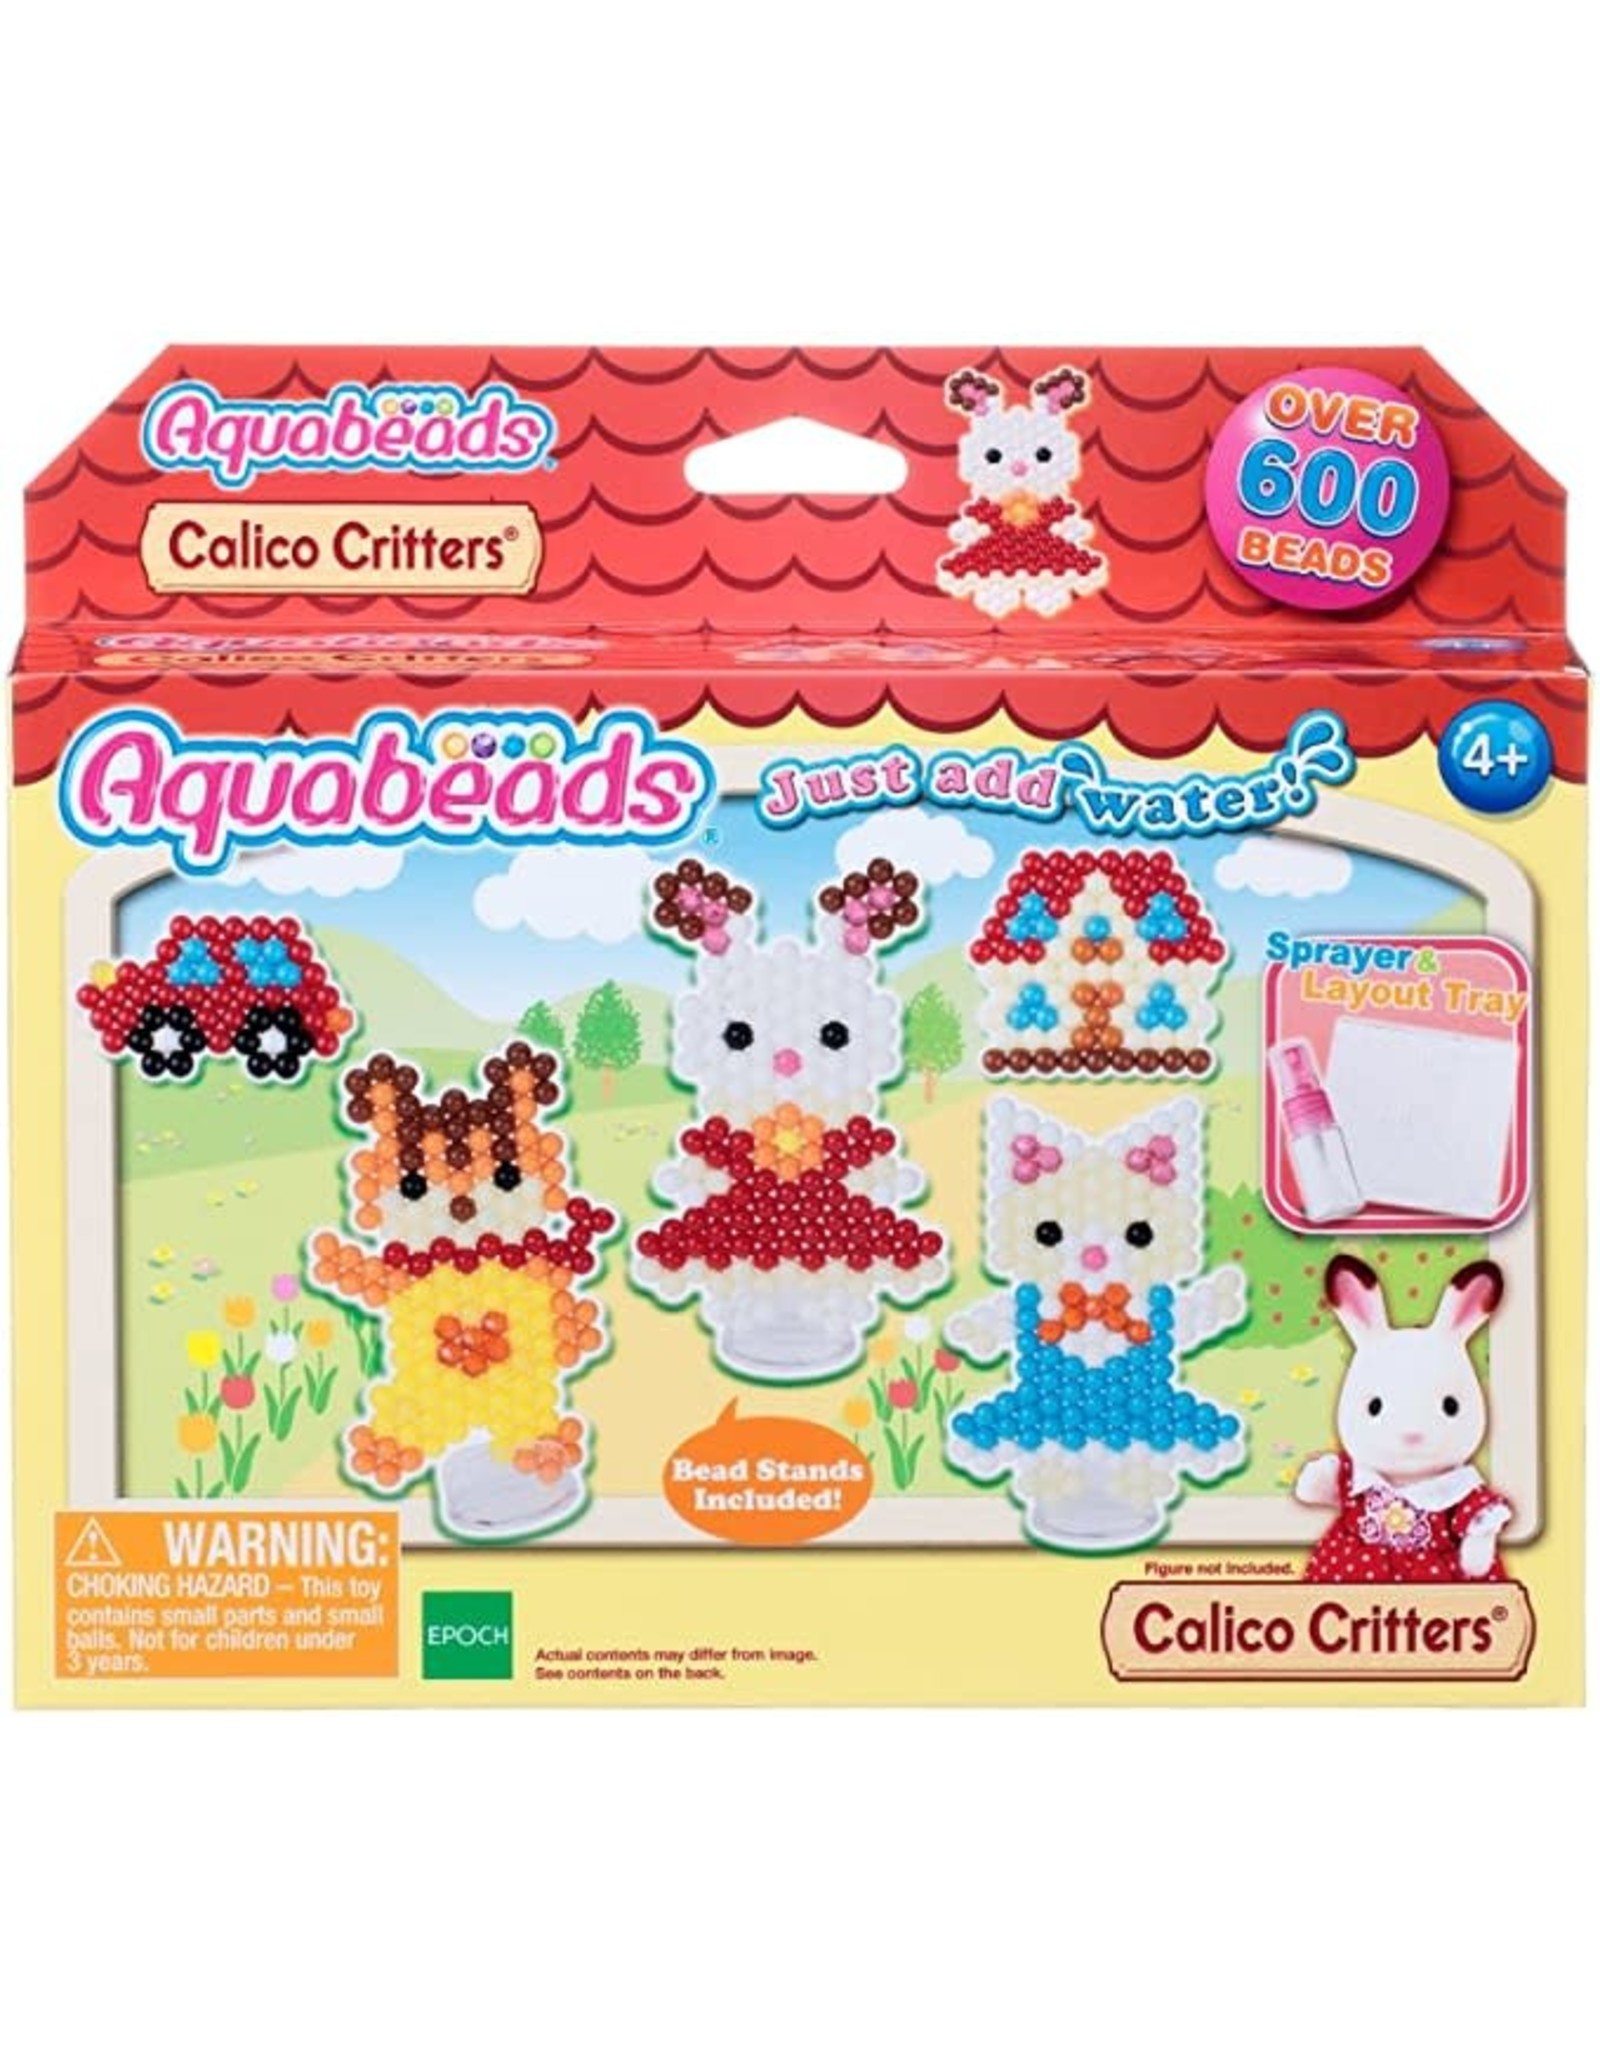 Calico Critters Character Set Aquabeads